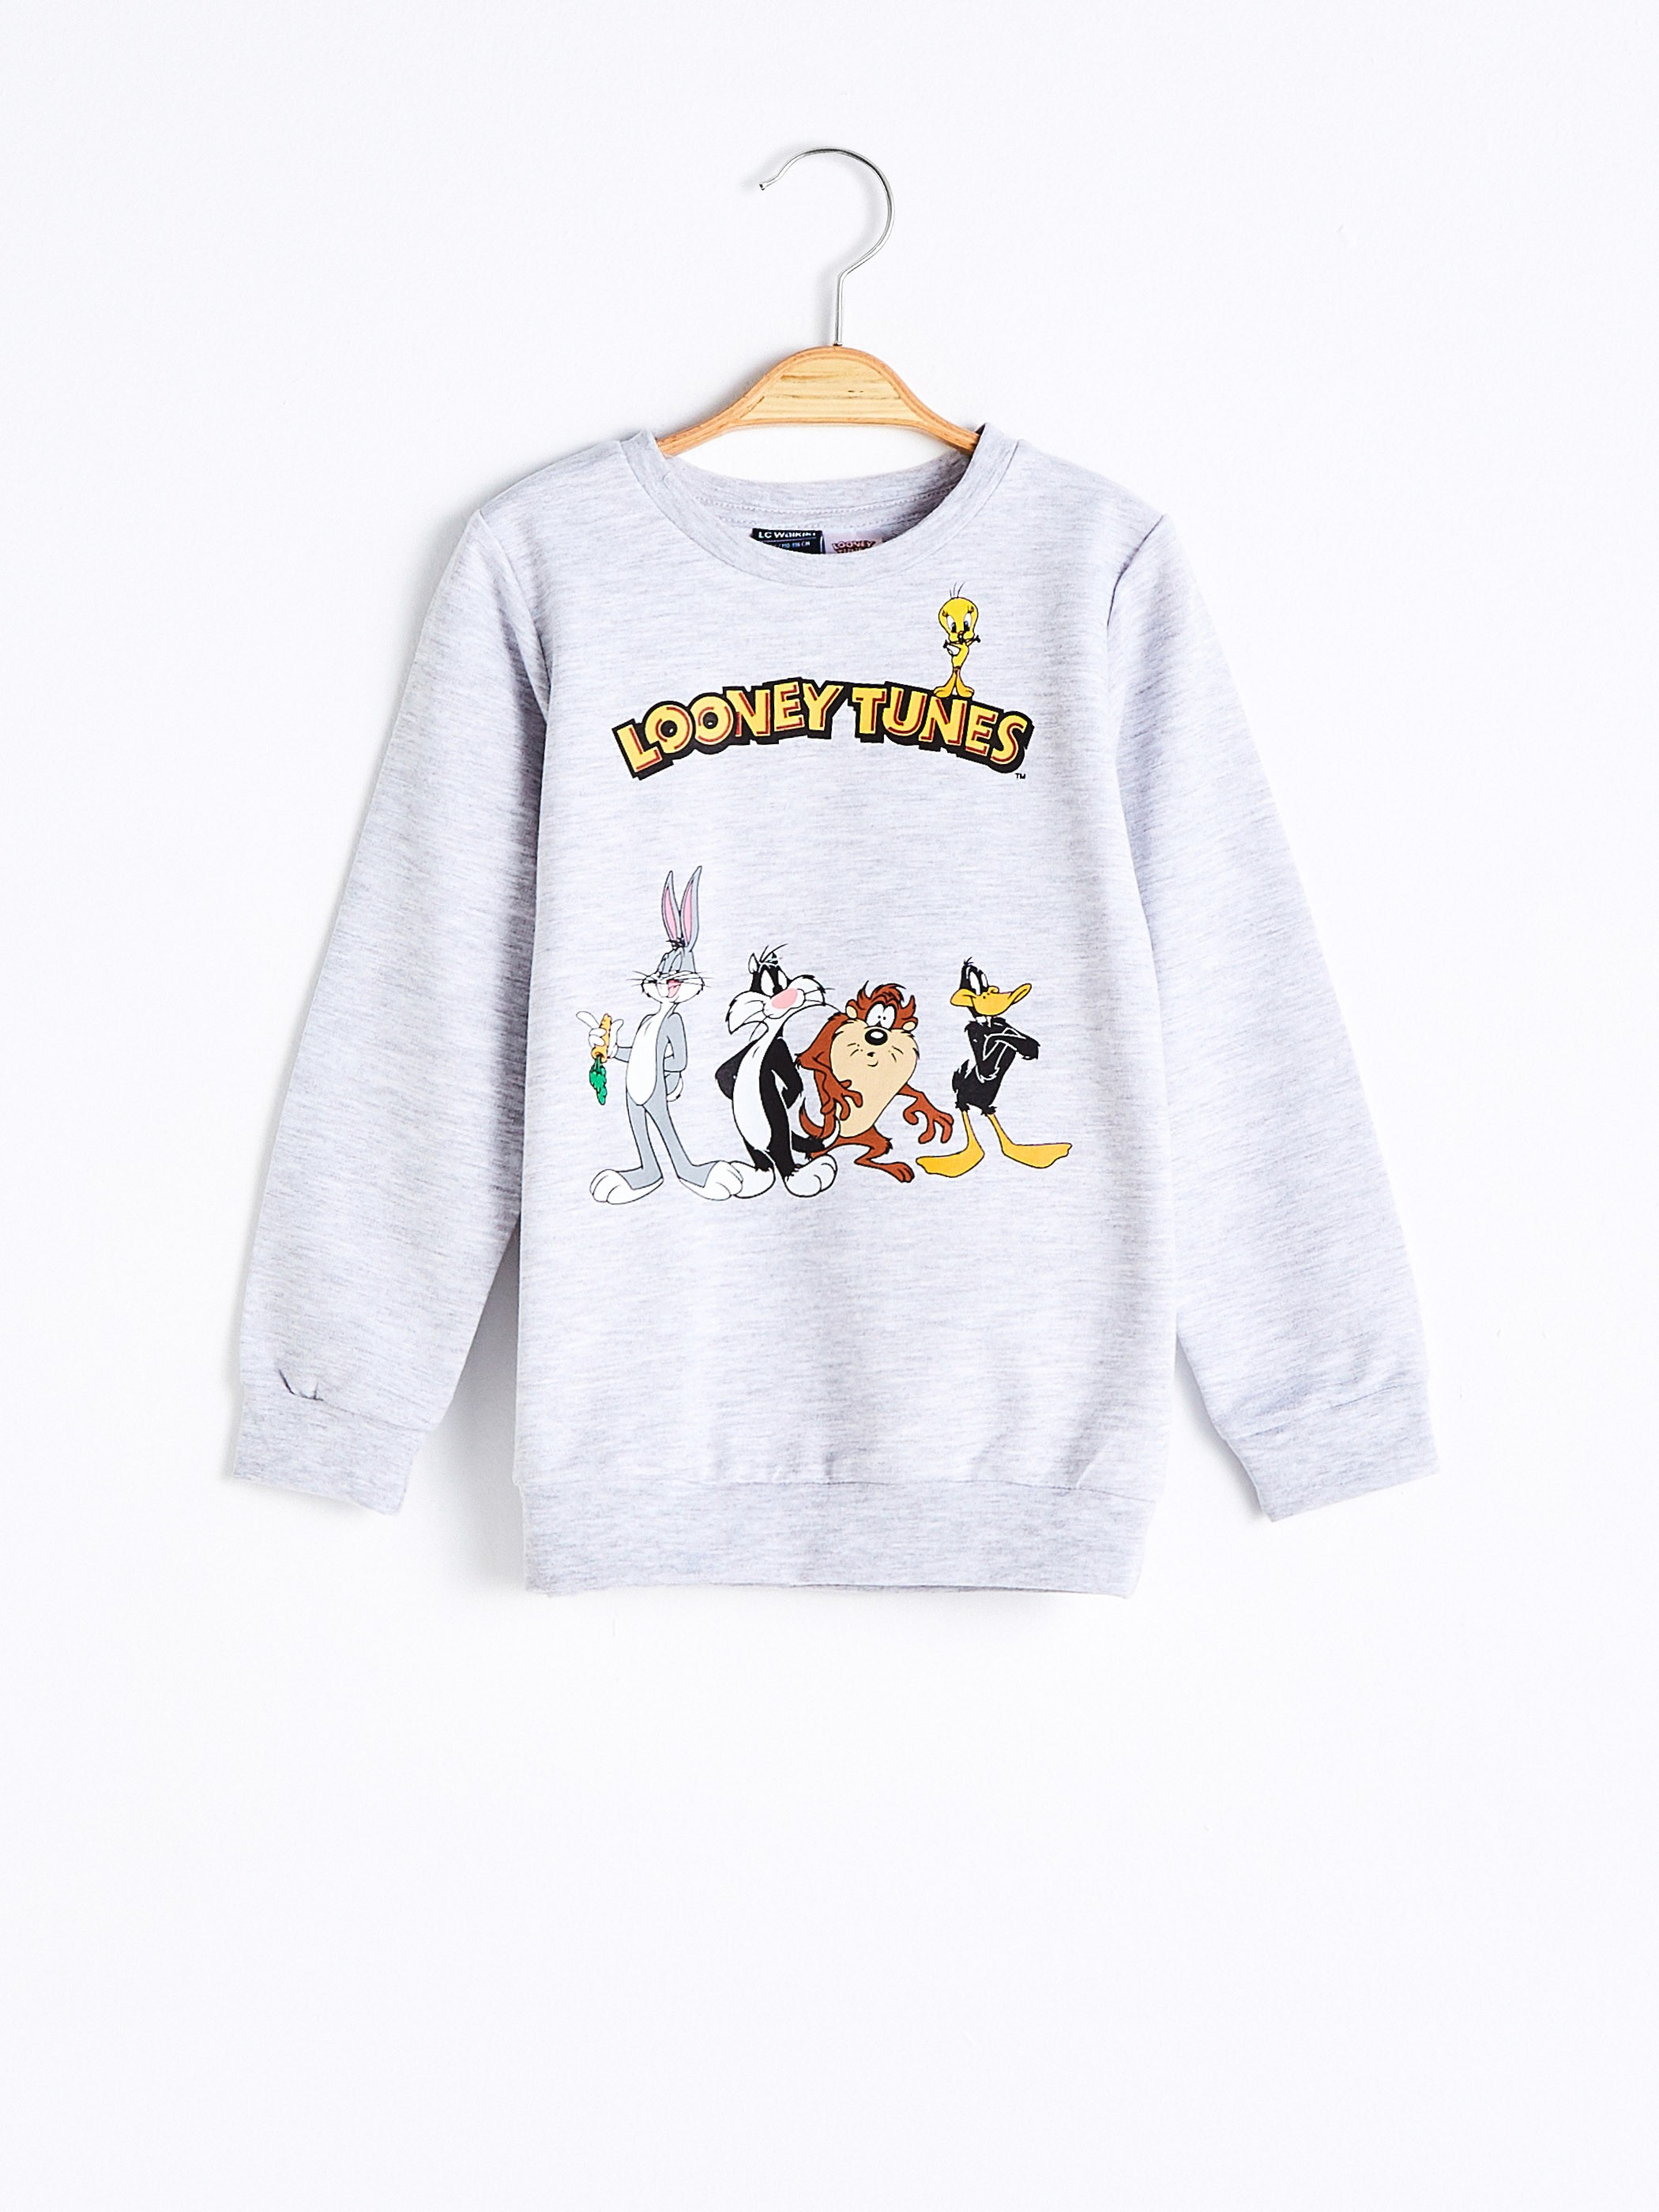 GREY - Boy's Looney Tunes Sweatshirt - 0WHO48Z4